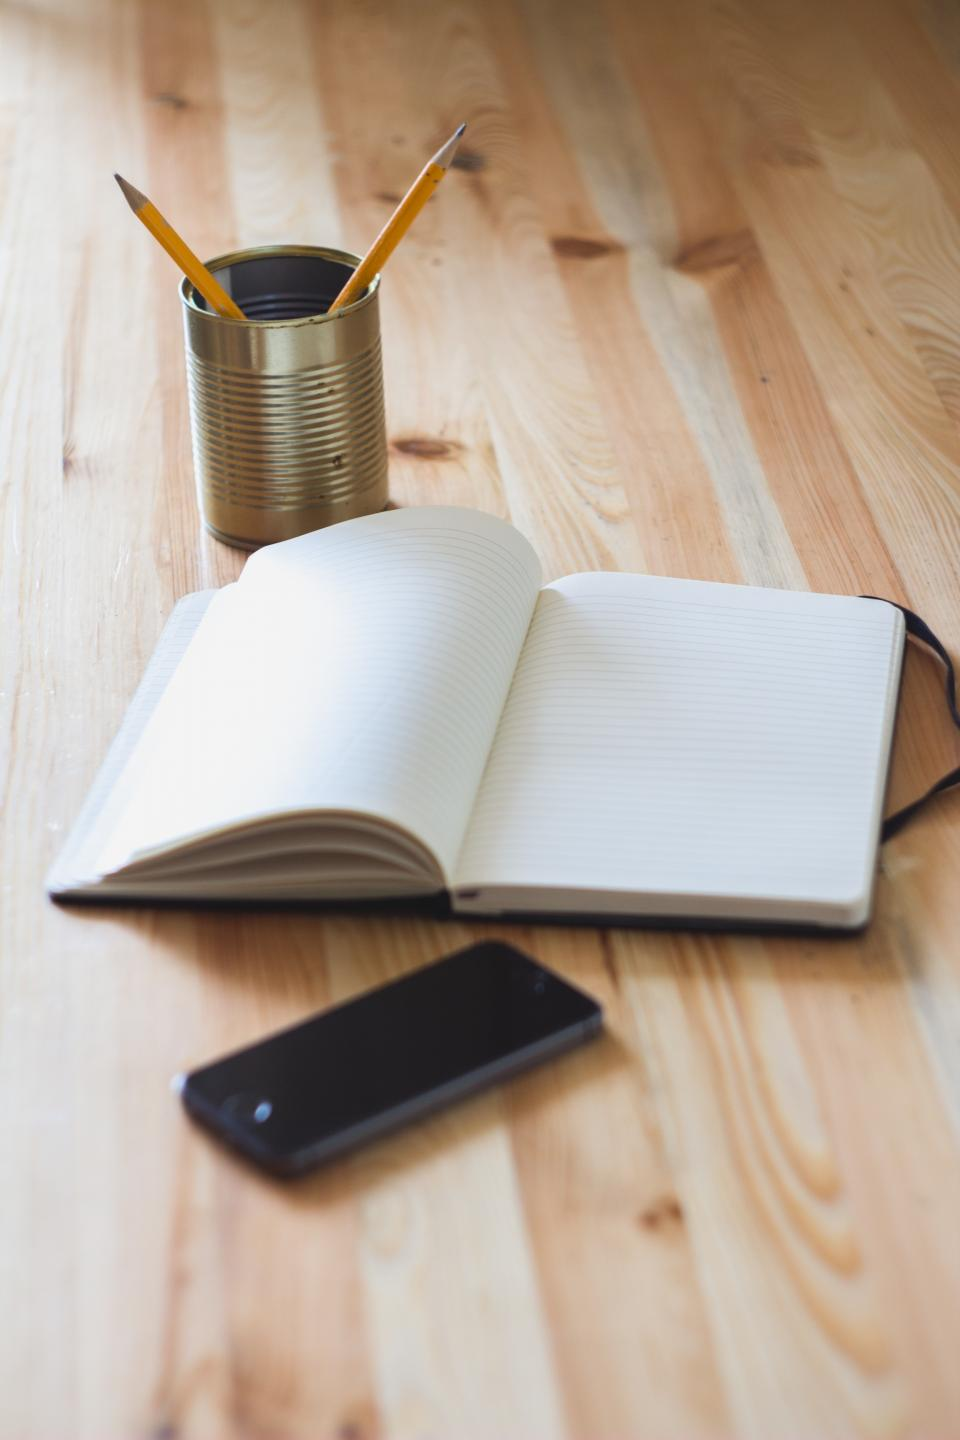 notebook, pencils, stationary, iphone, mobile, technology, objects, creative, business, office